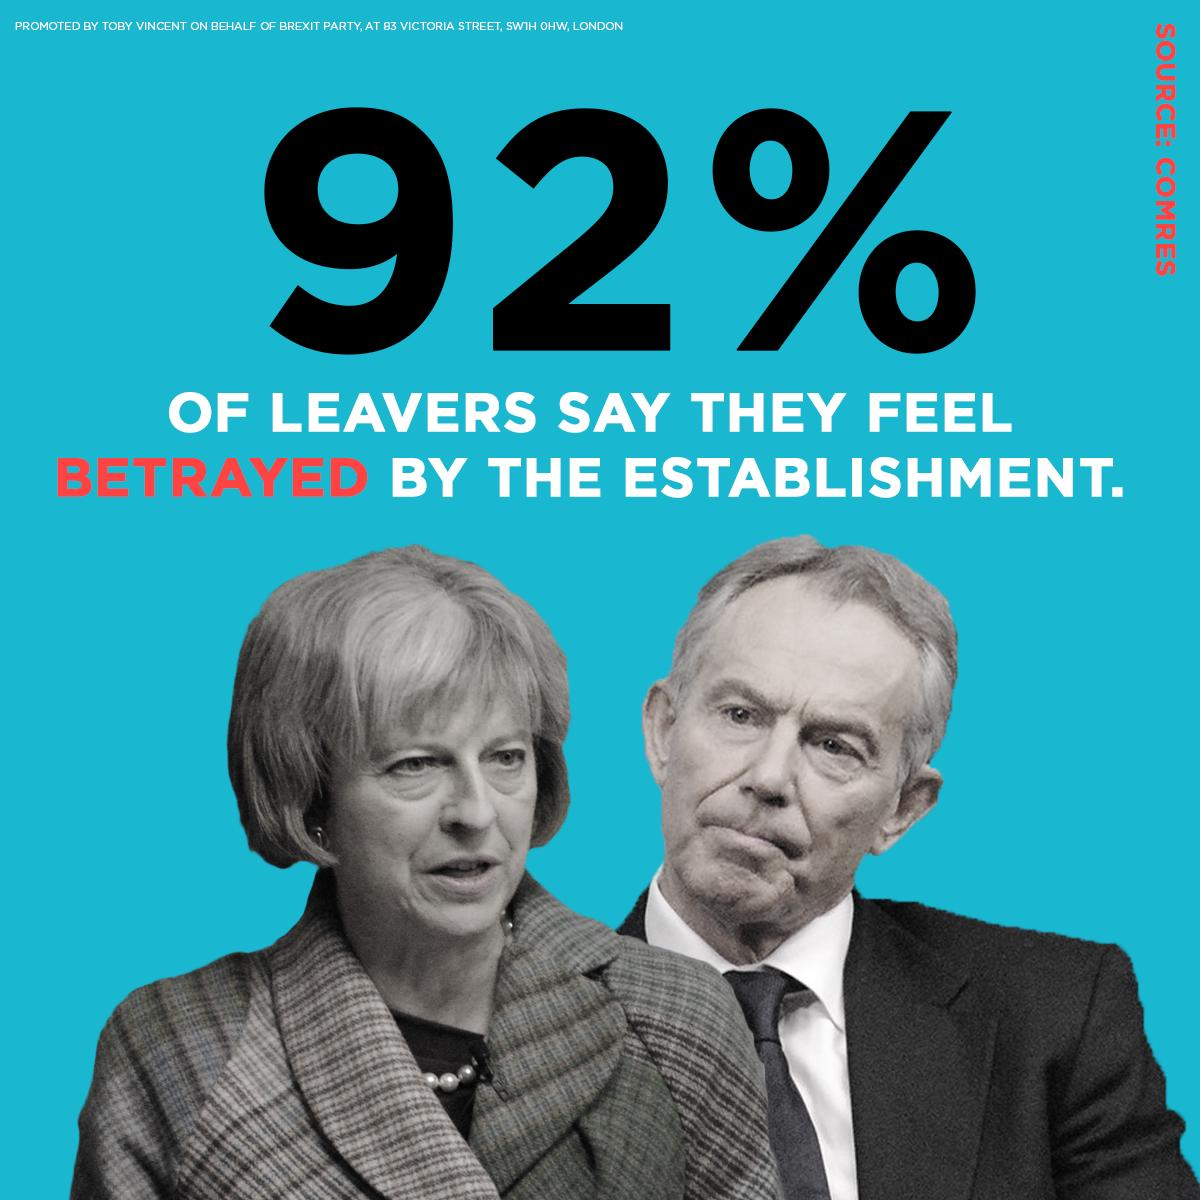 92% of leavers say they feel betrayed by the establishment over Brexit.   Let&#39;s change politics for good on 23rd May. <br>http://pic.twitter.com/6jQsETH7bf